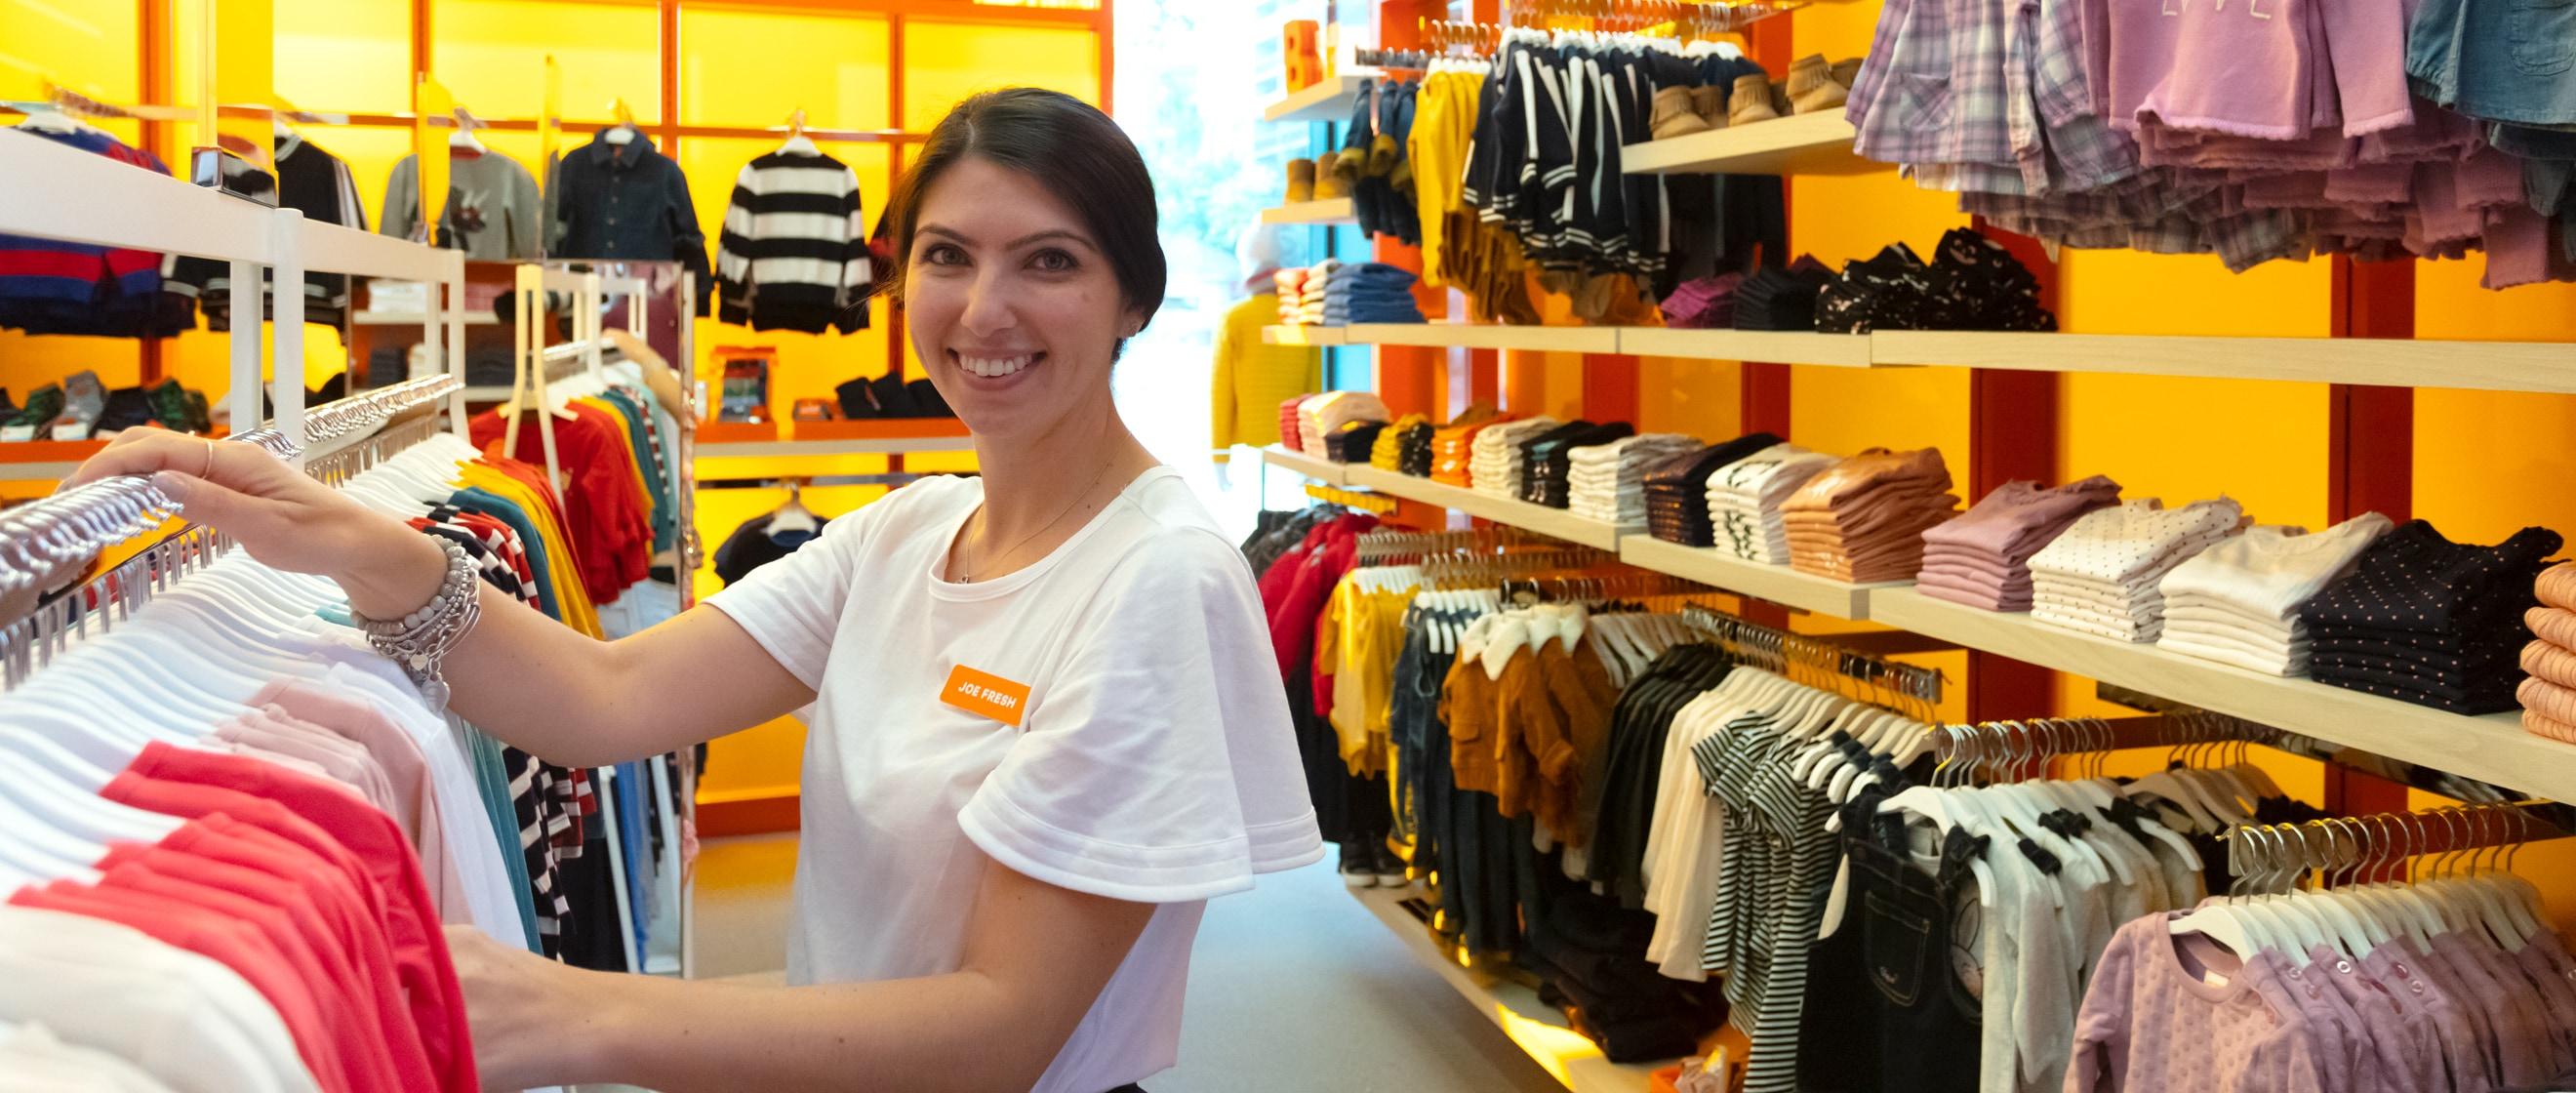 Joe Fresh employee smiling and working sorting clothes.